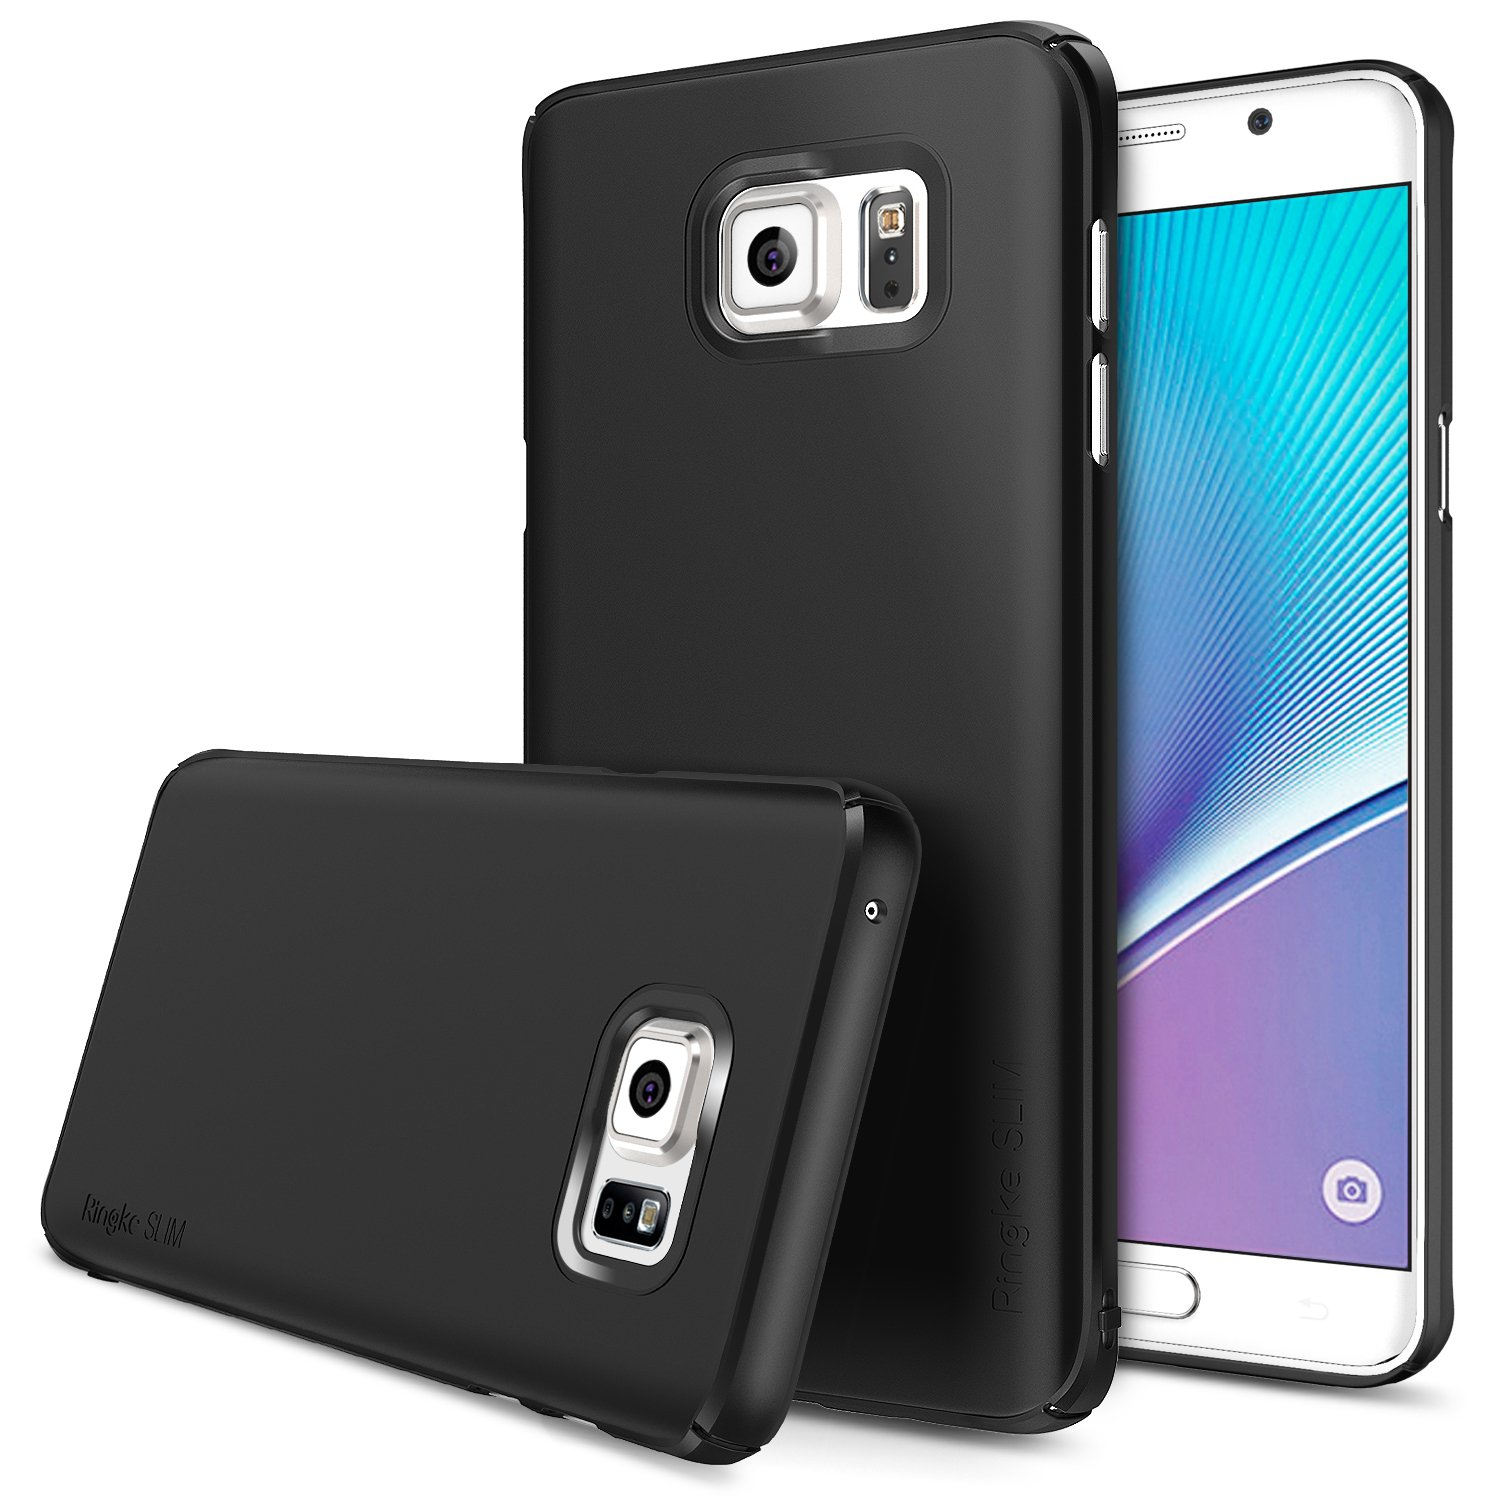 Galaxy Note 5 Case - Ringke SLIM Full Coverage on All 4-Sides & Back